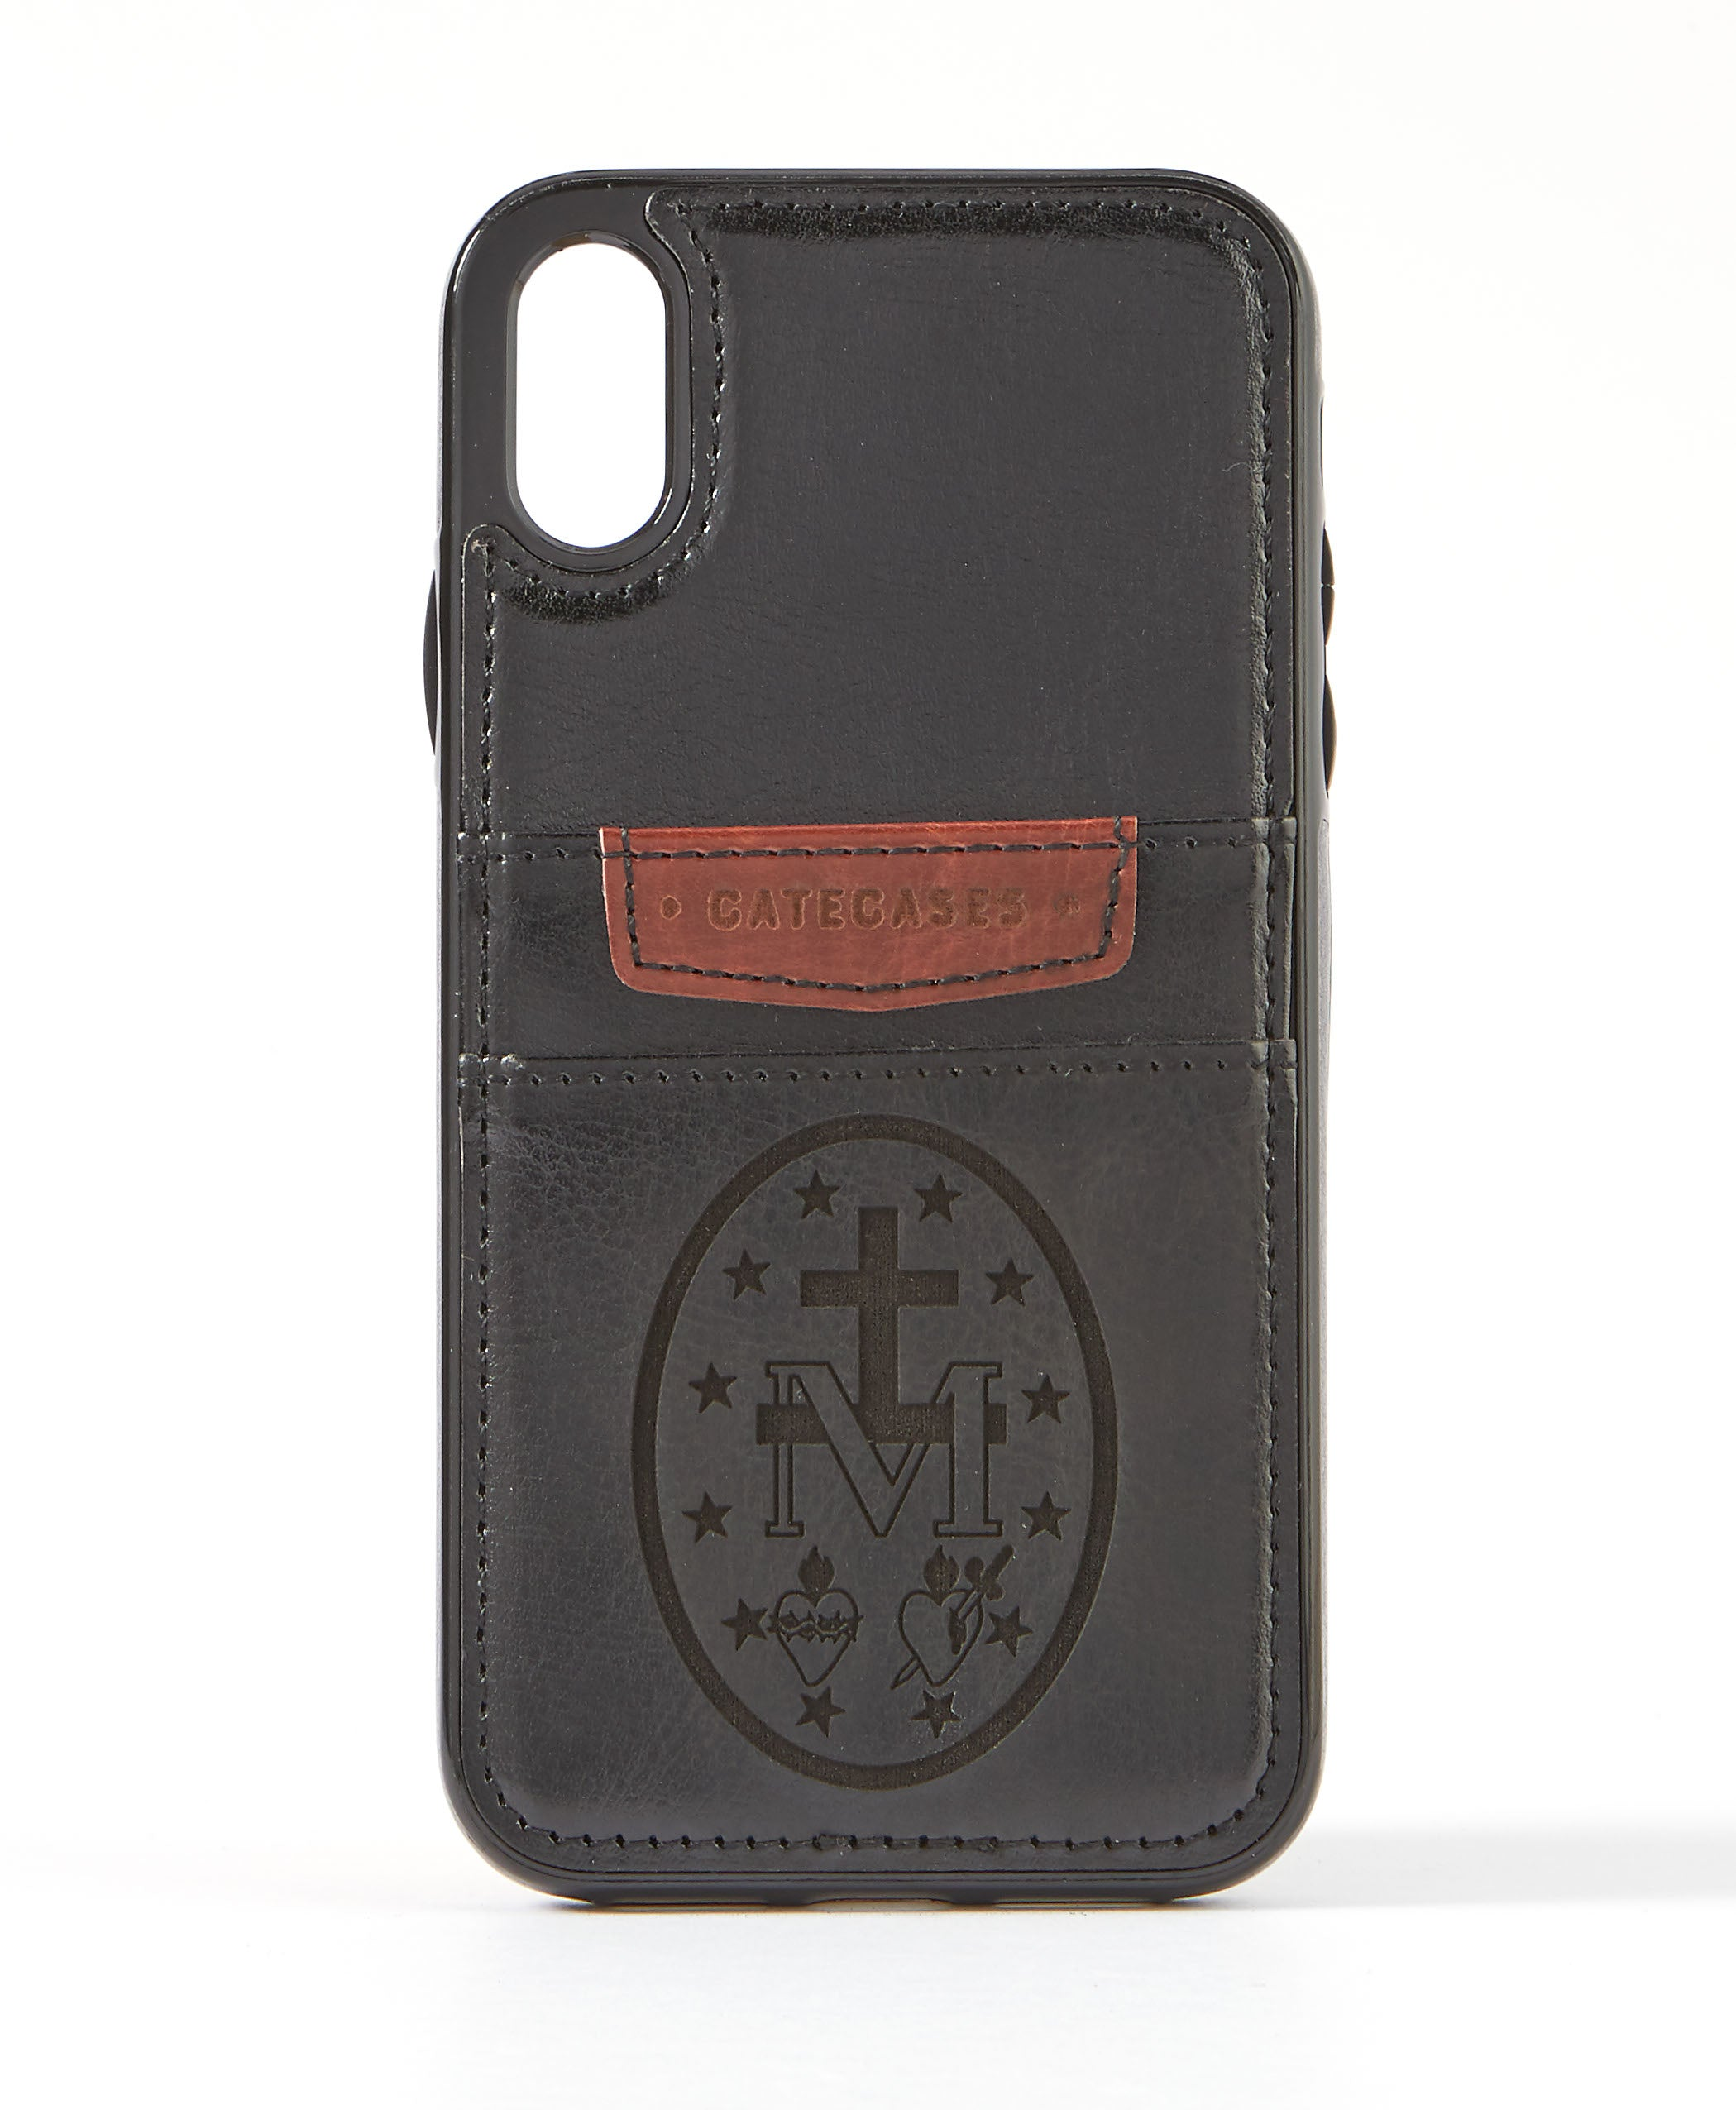 Miraculous Medal Black Leather Card Case for iPhone XR